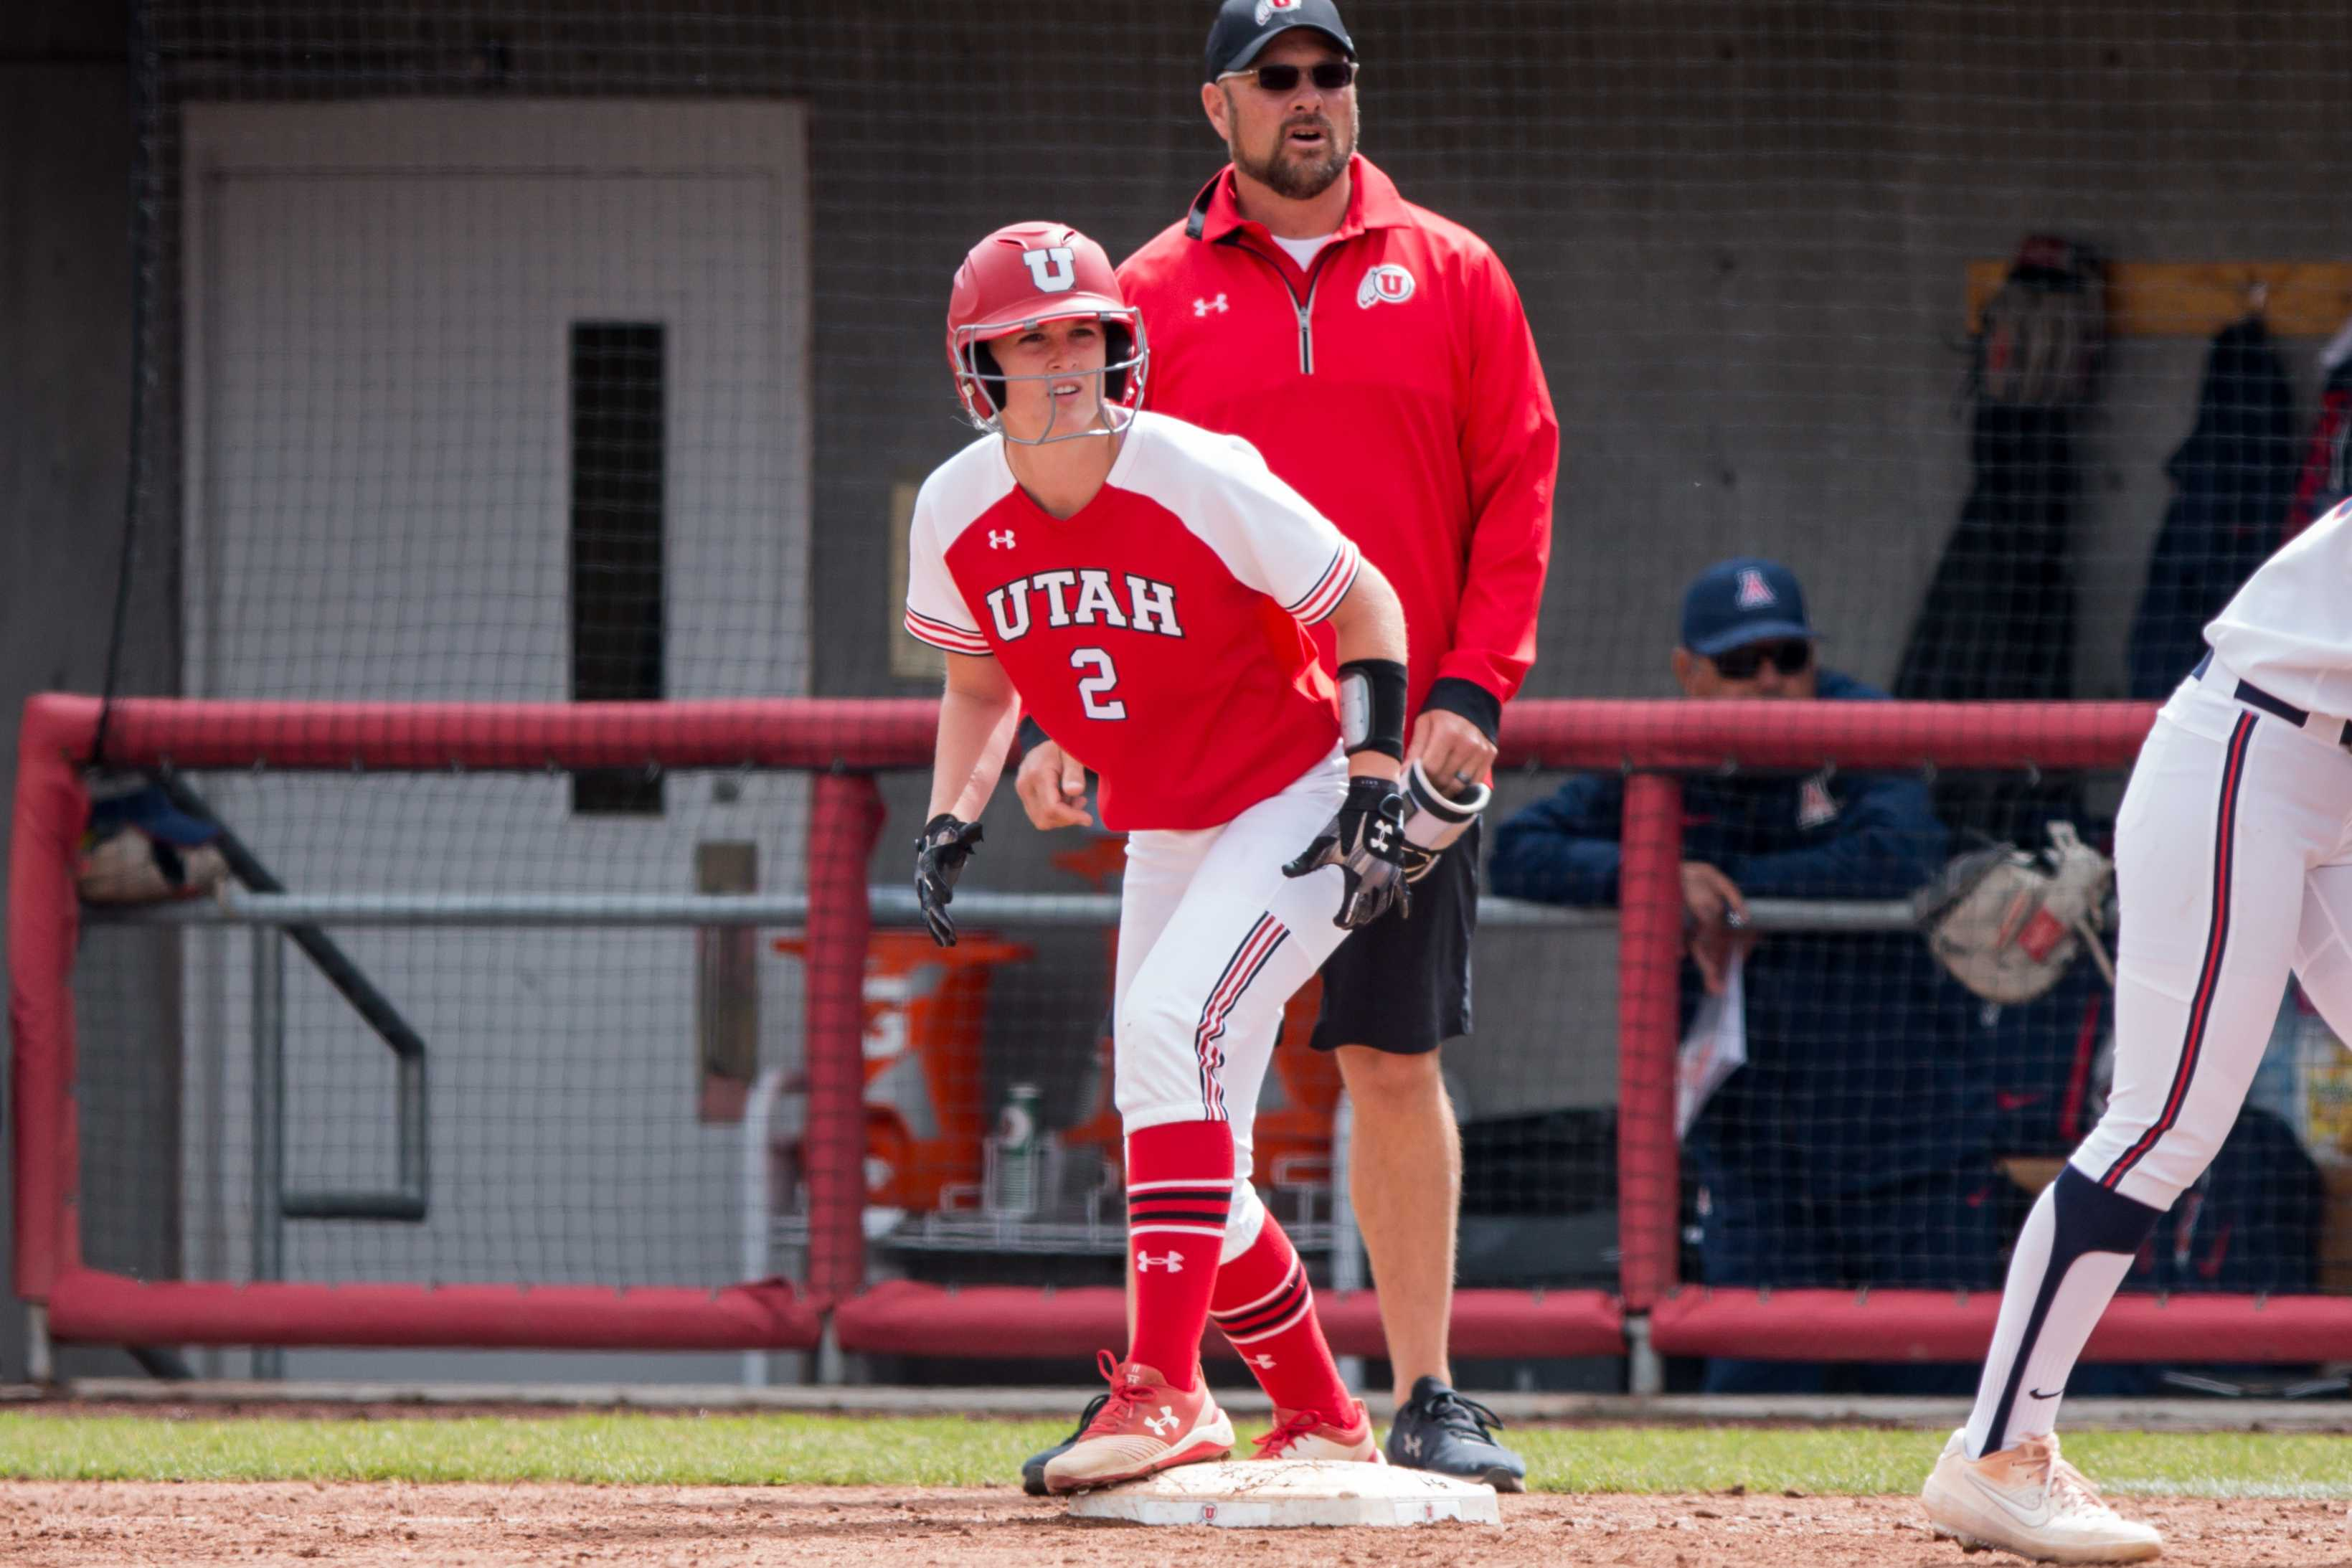 University of Utah freshman utility Ellessa Bonstrom (2) was ready to run in an NCAA Softball game vs. Arizona at Dumke Family Softball Field in Salt Lake City, UT on Saturday April 06, 2019.  (Photo by Curtis Lin | Daily Utah Chronicle)